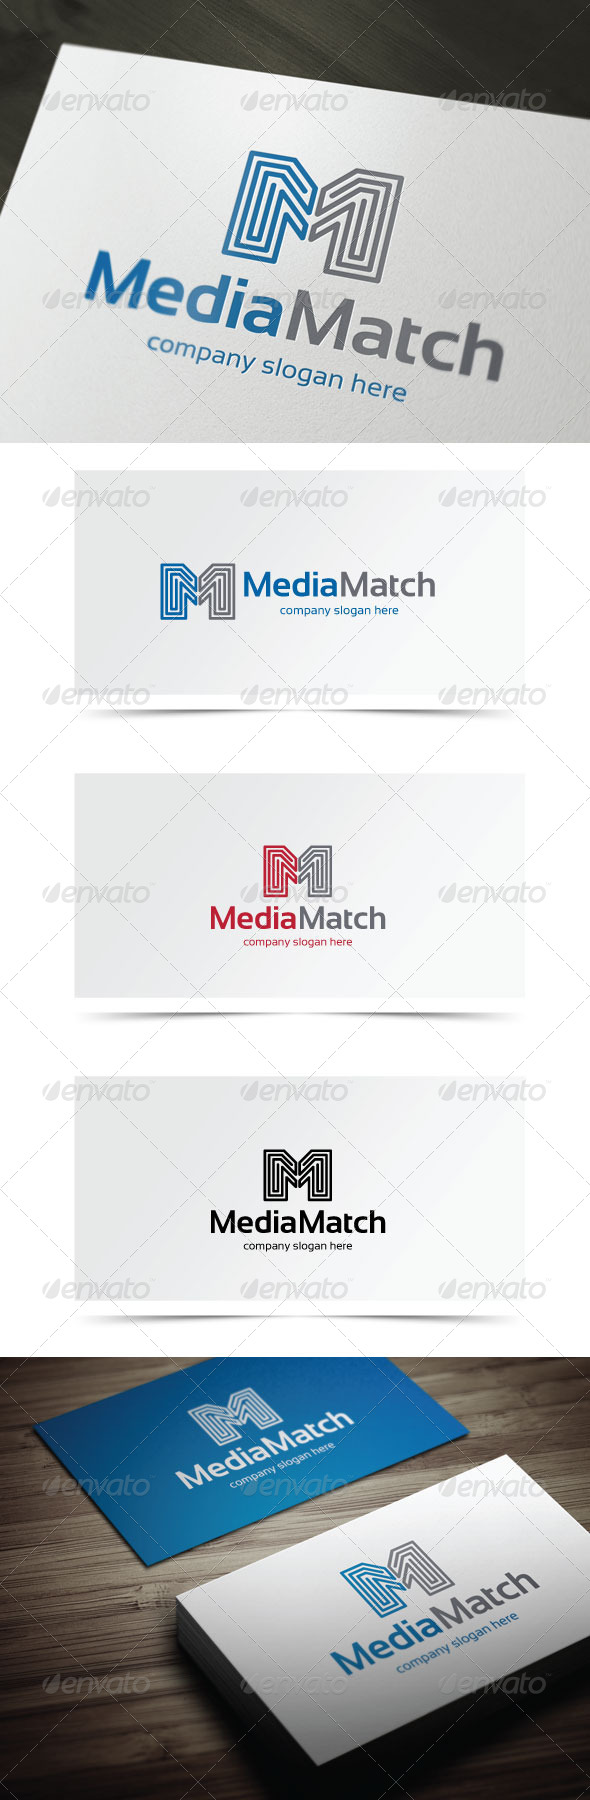 GraphicRiver Media Match 6562342